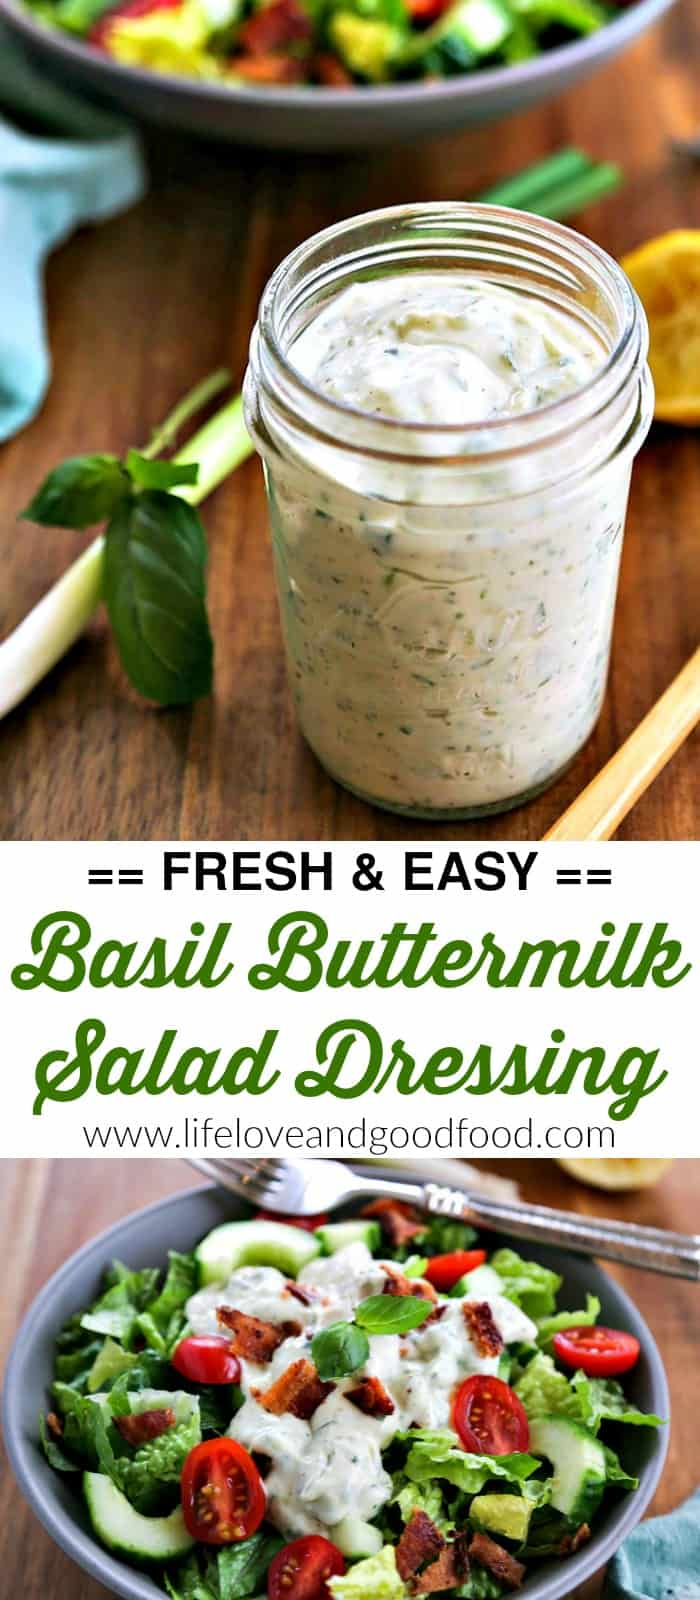 Basil Buttermilk Salad Dressing., a delicious homemade dressing blended up with fresh herbs, garlic, and tangy buttermilk. #ranchdressing #saladdressing